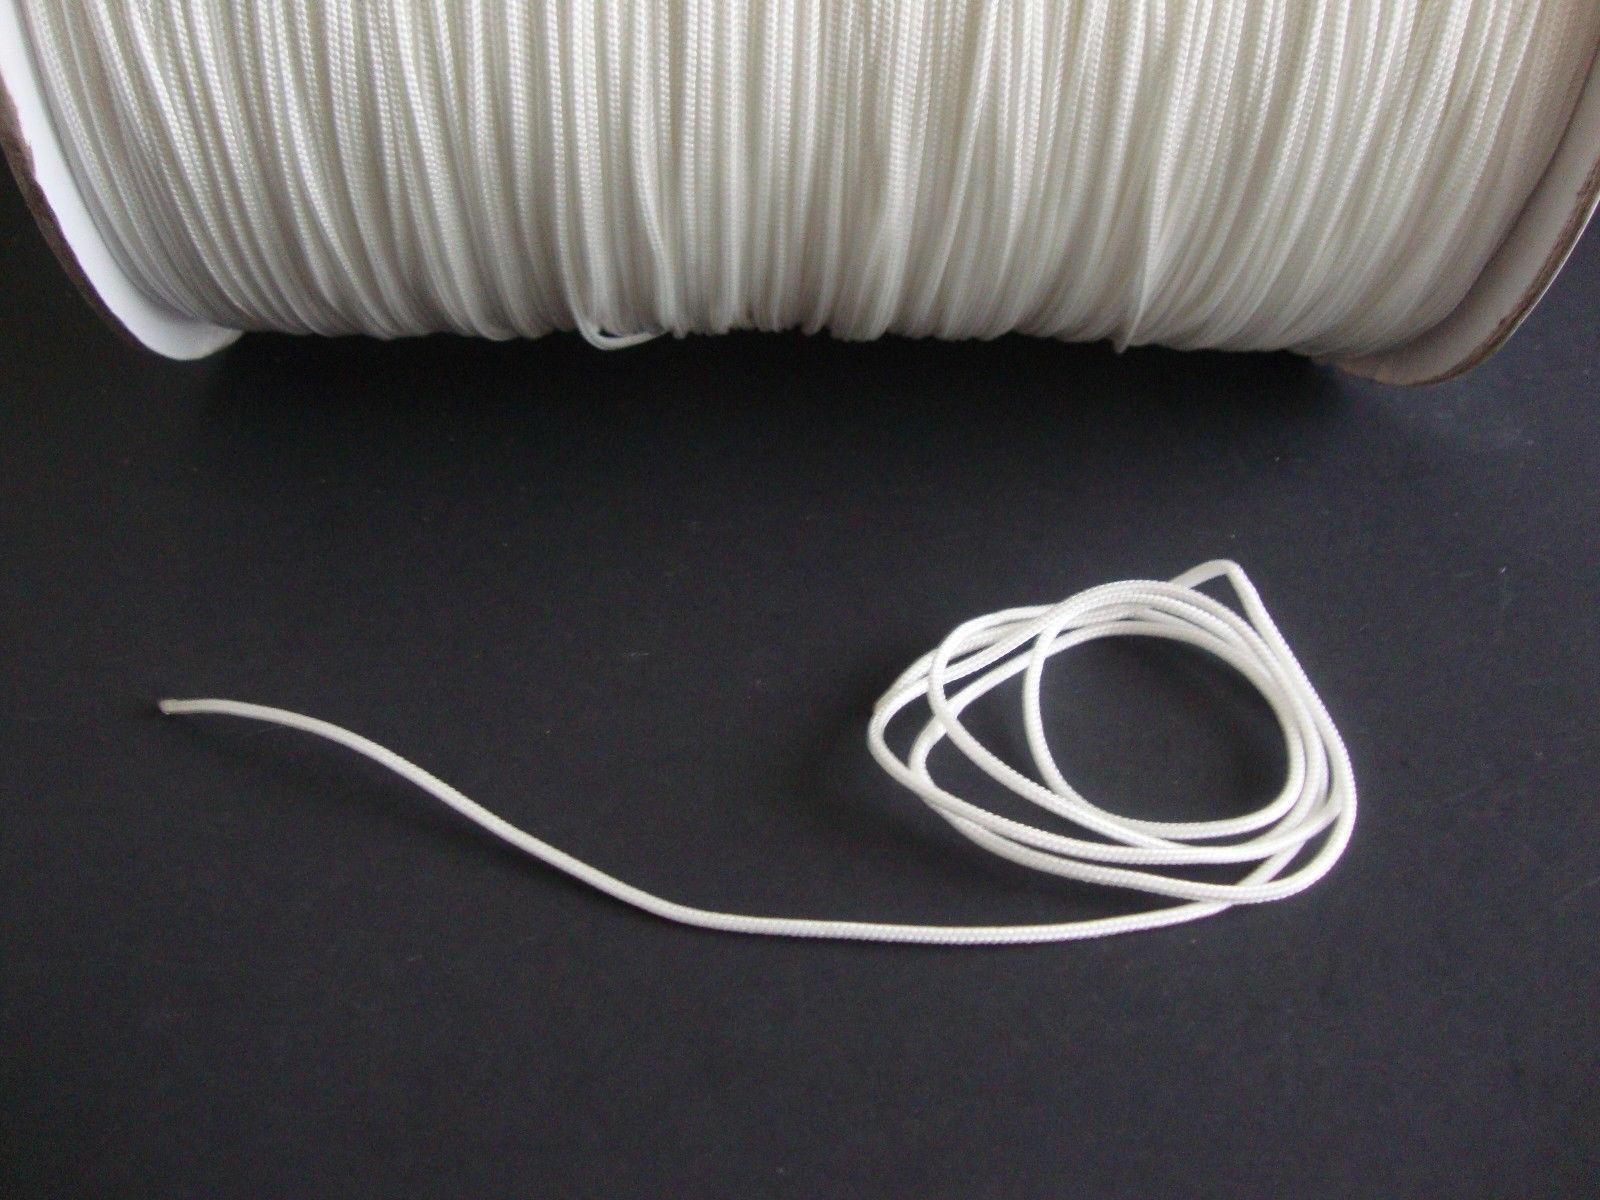 20 FEET:1.8mm WHITE LIFT CORD for Blinds, Roman Shades and More